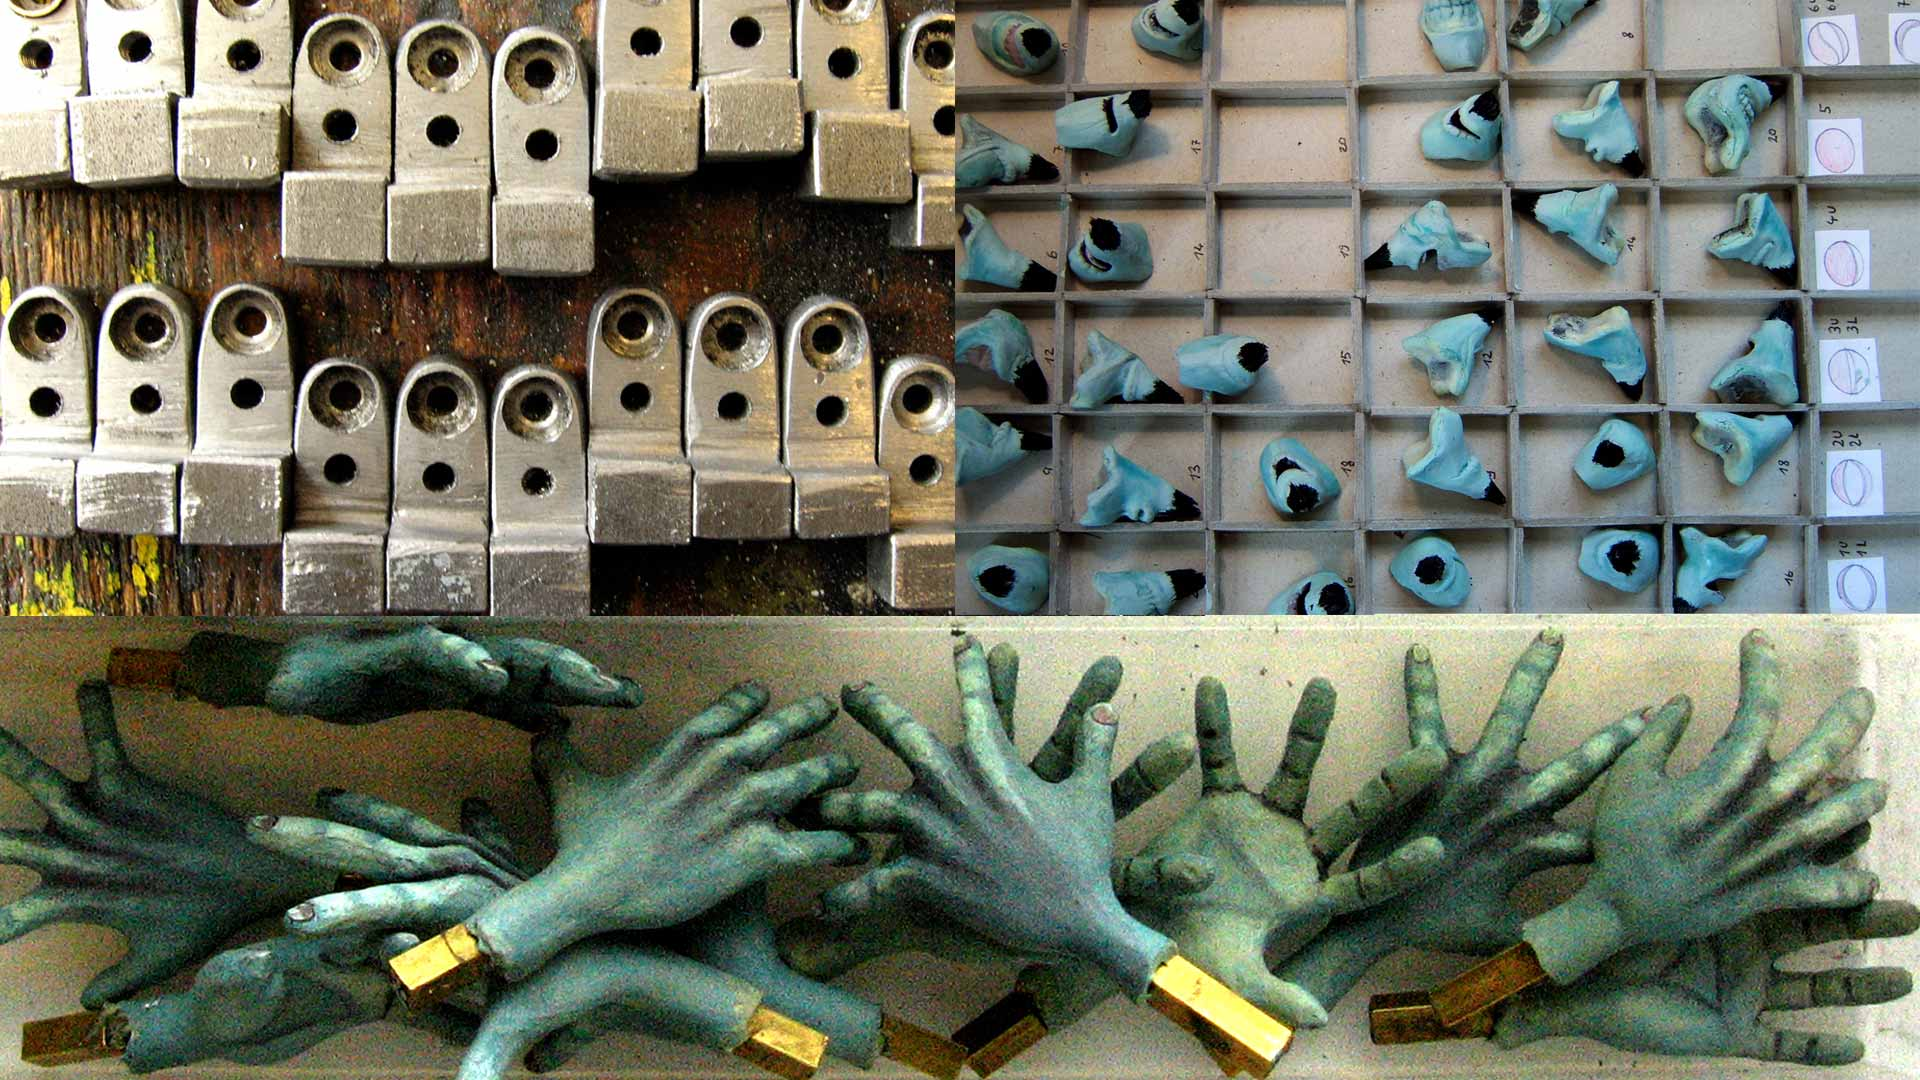 spare-hands-replacement-mouths-socket-joints-copy.jpg